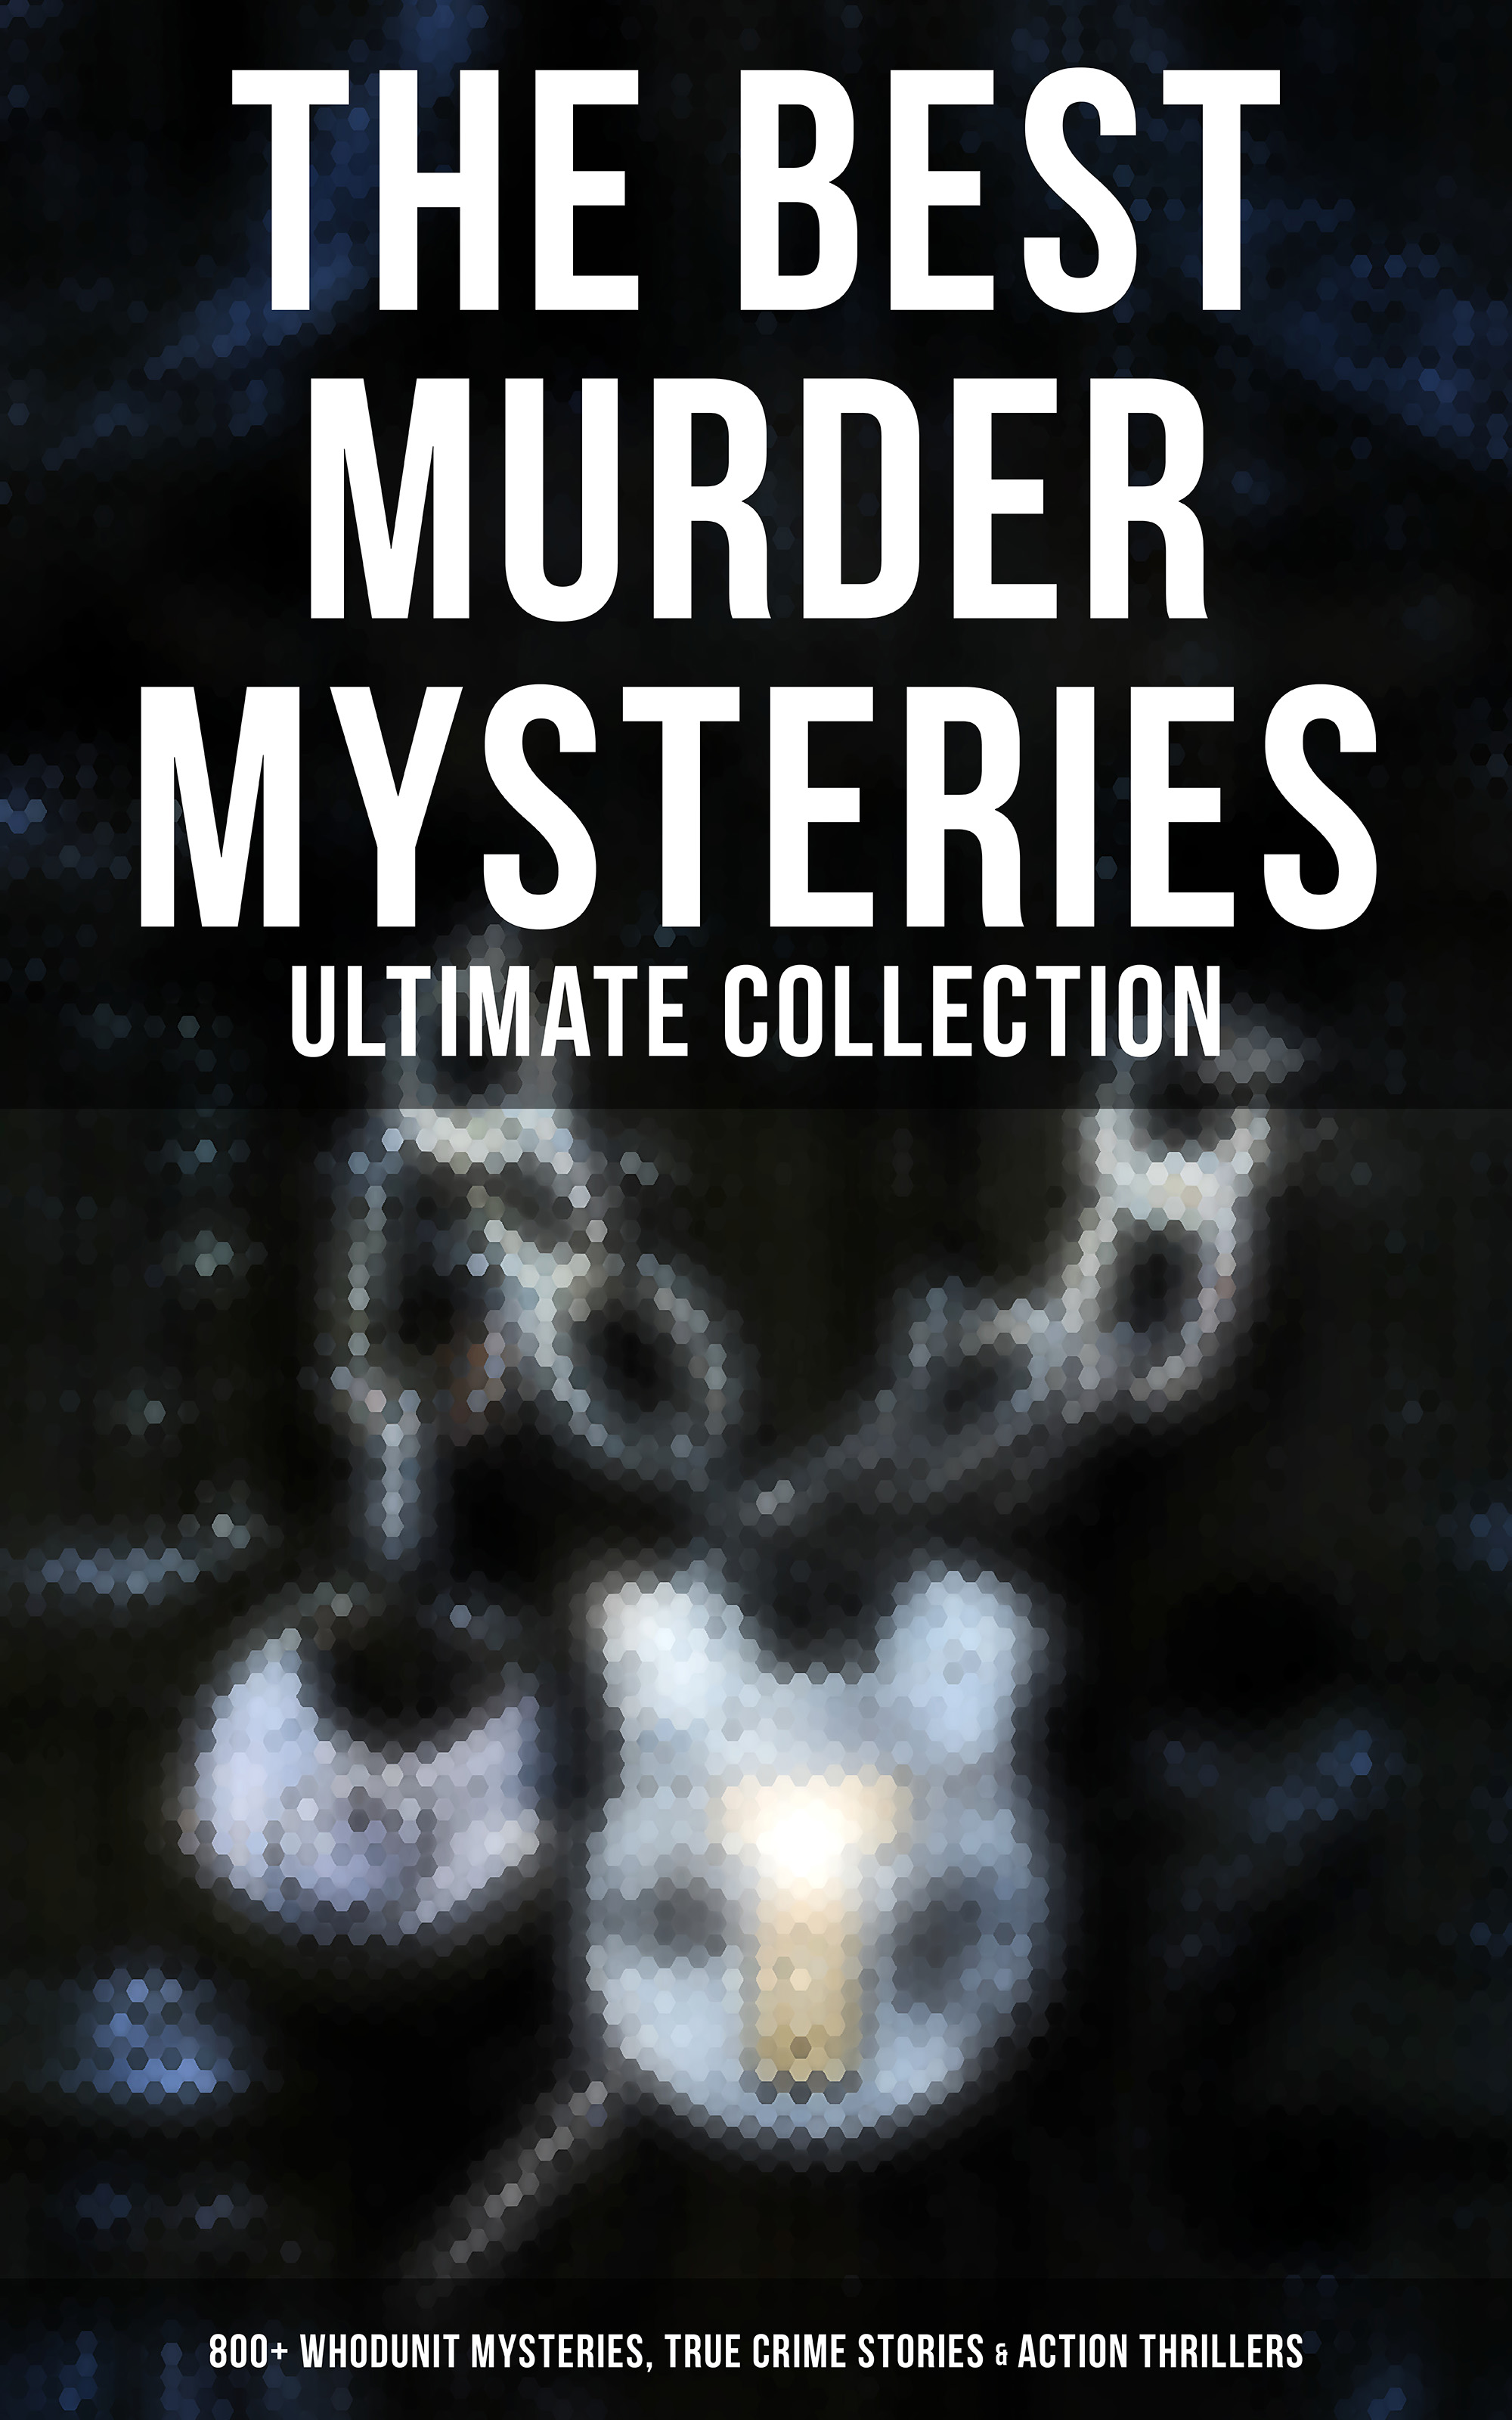 Эдгар Аллан По The Best Murder Mysteries - Ultimate Collection: 800+ Whodunit Mysteries, True Crime Stories & Action Thrillers cd sweet action the ultimate story